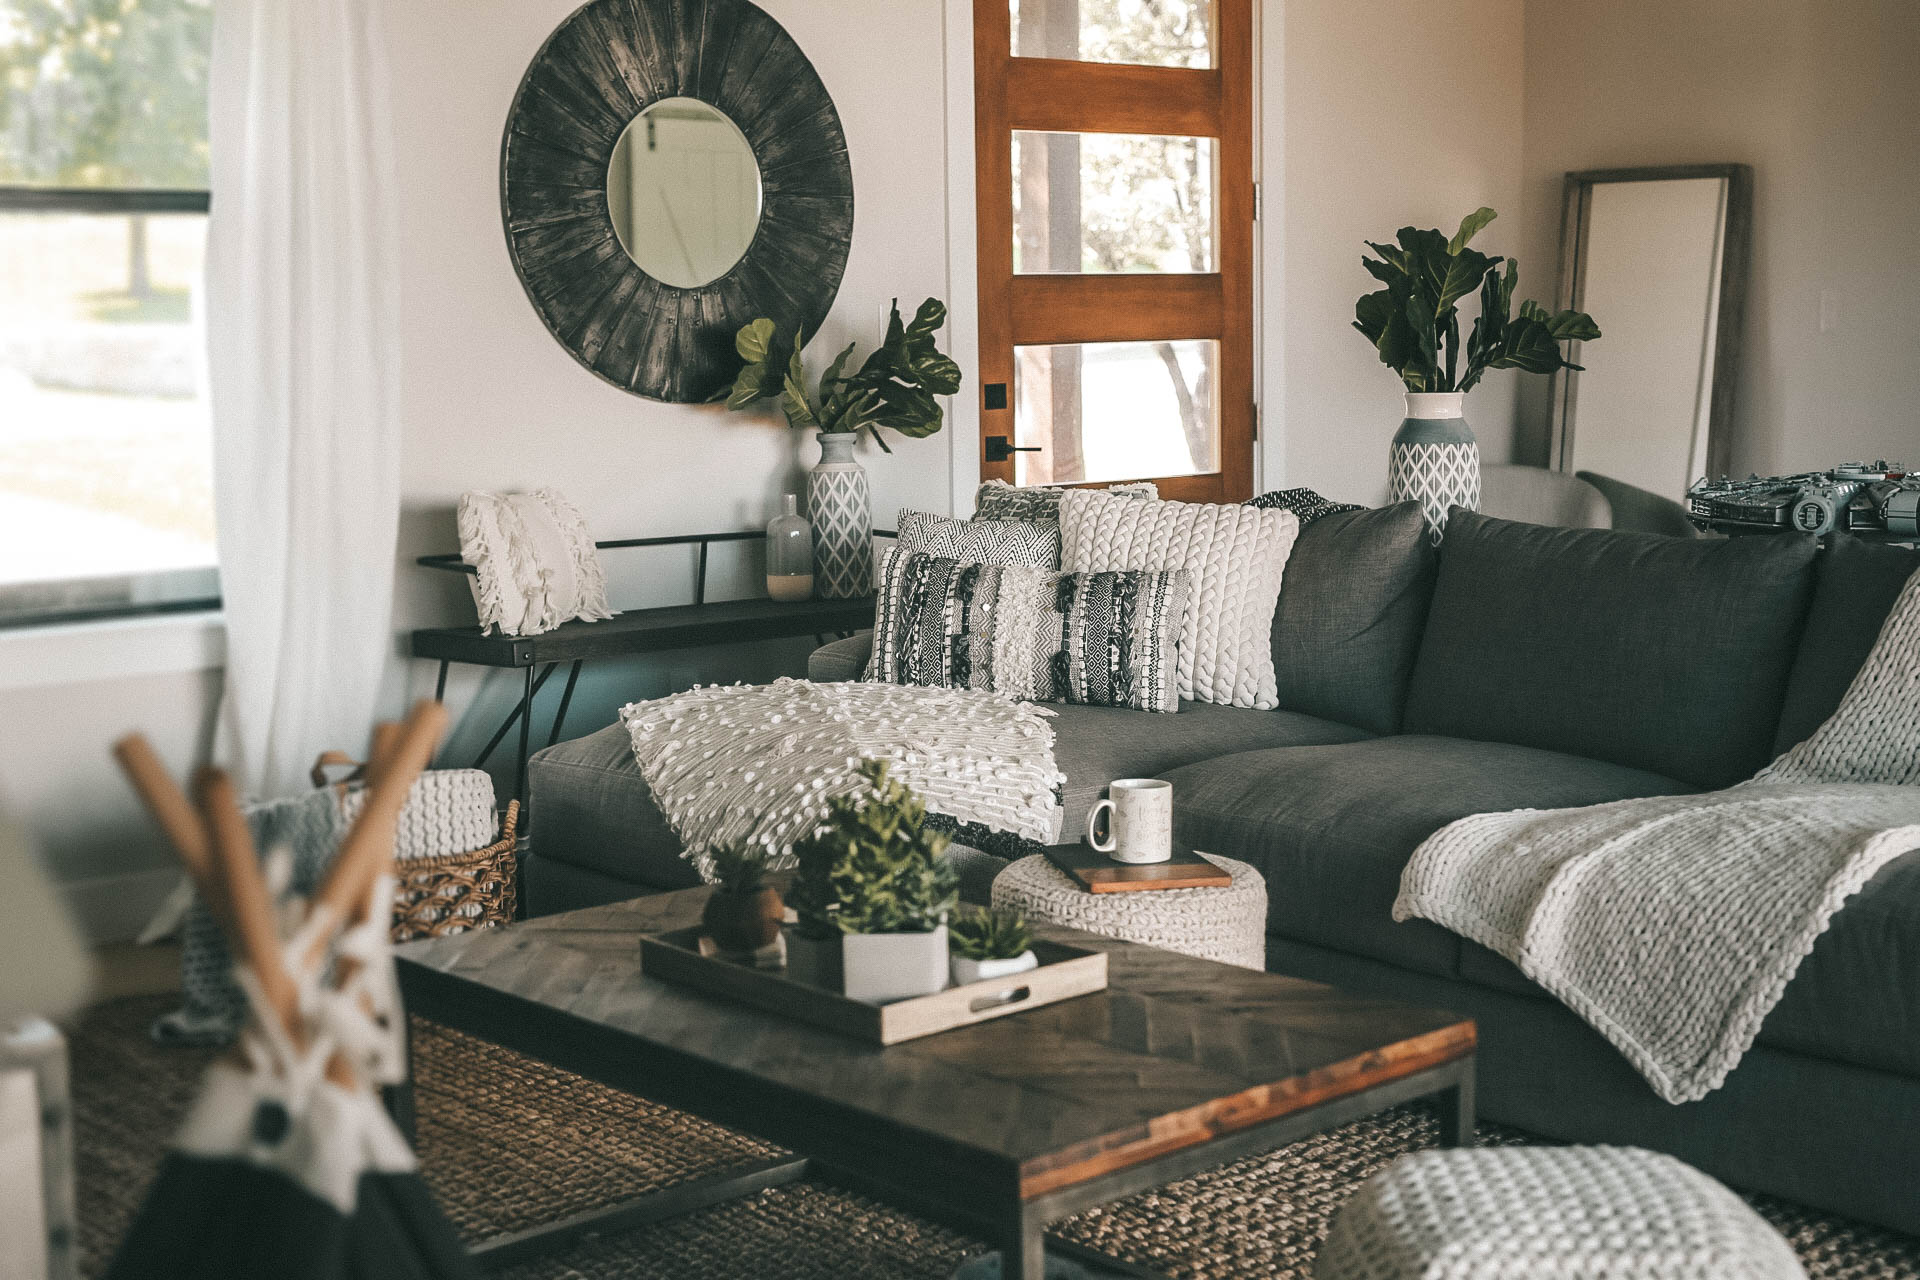 Fall Home Decor for a Cozier Home with Nordstrom Decor | Dressed to Kill